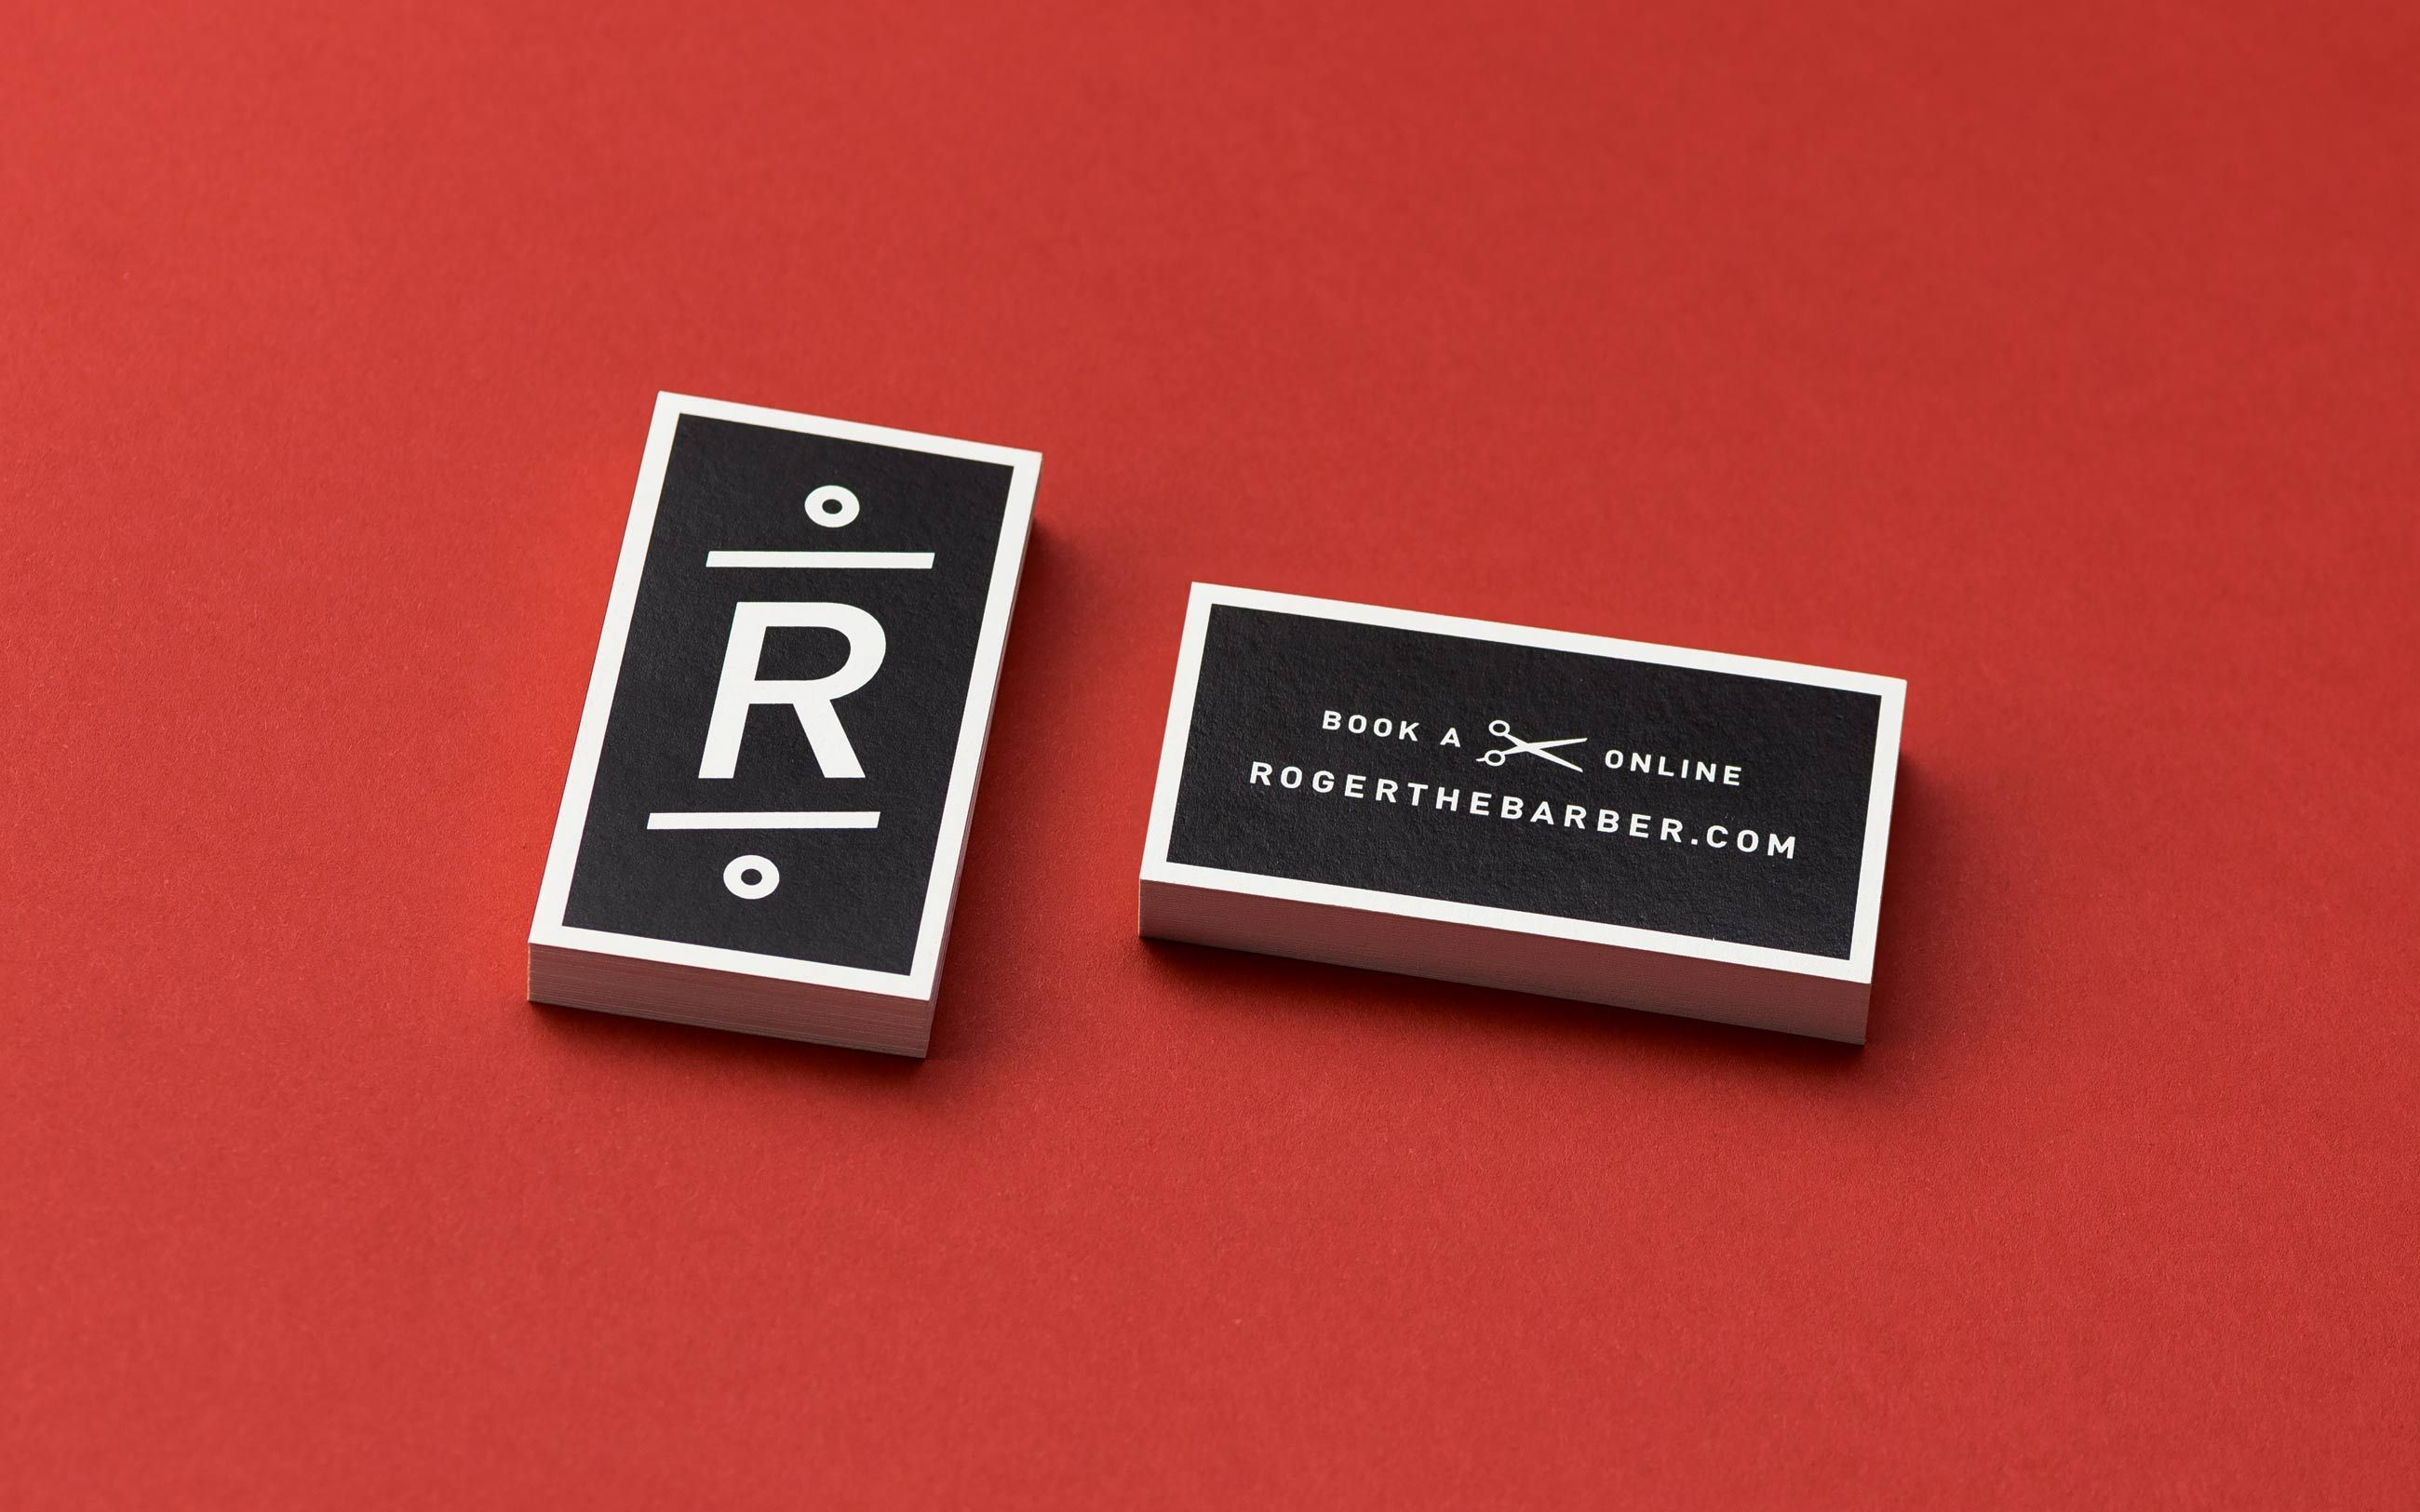 Roger The Barber - Business Cards | Business Card Inspiration ...